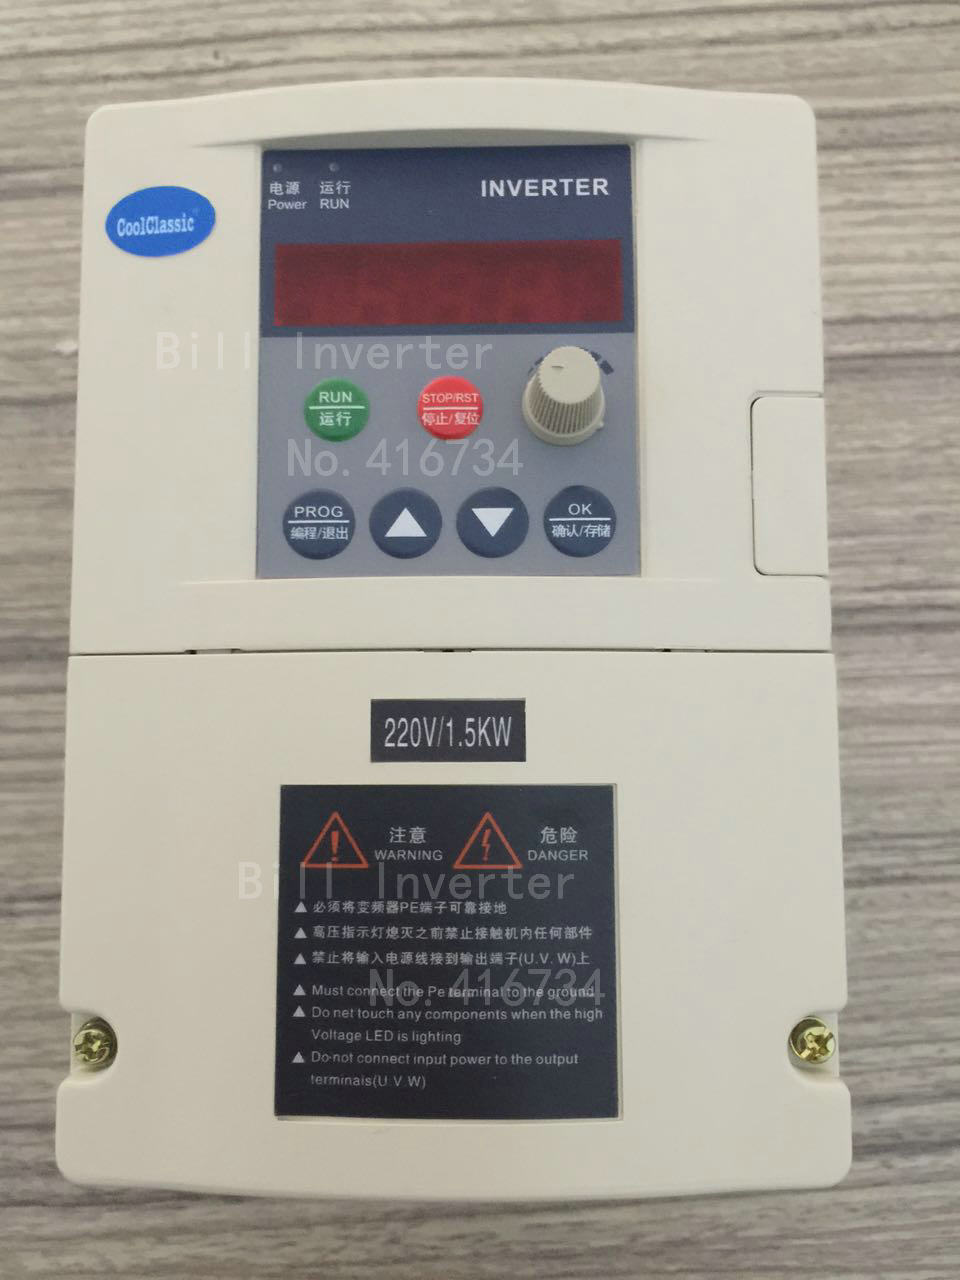 VFD Inverter ZW S1 2T  1.5KW/2.2KW Single phase 110V/220V Input and For three phase motor with 2M Cable  and Outside Panel-in Inverters & Converters from Home Improvement